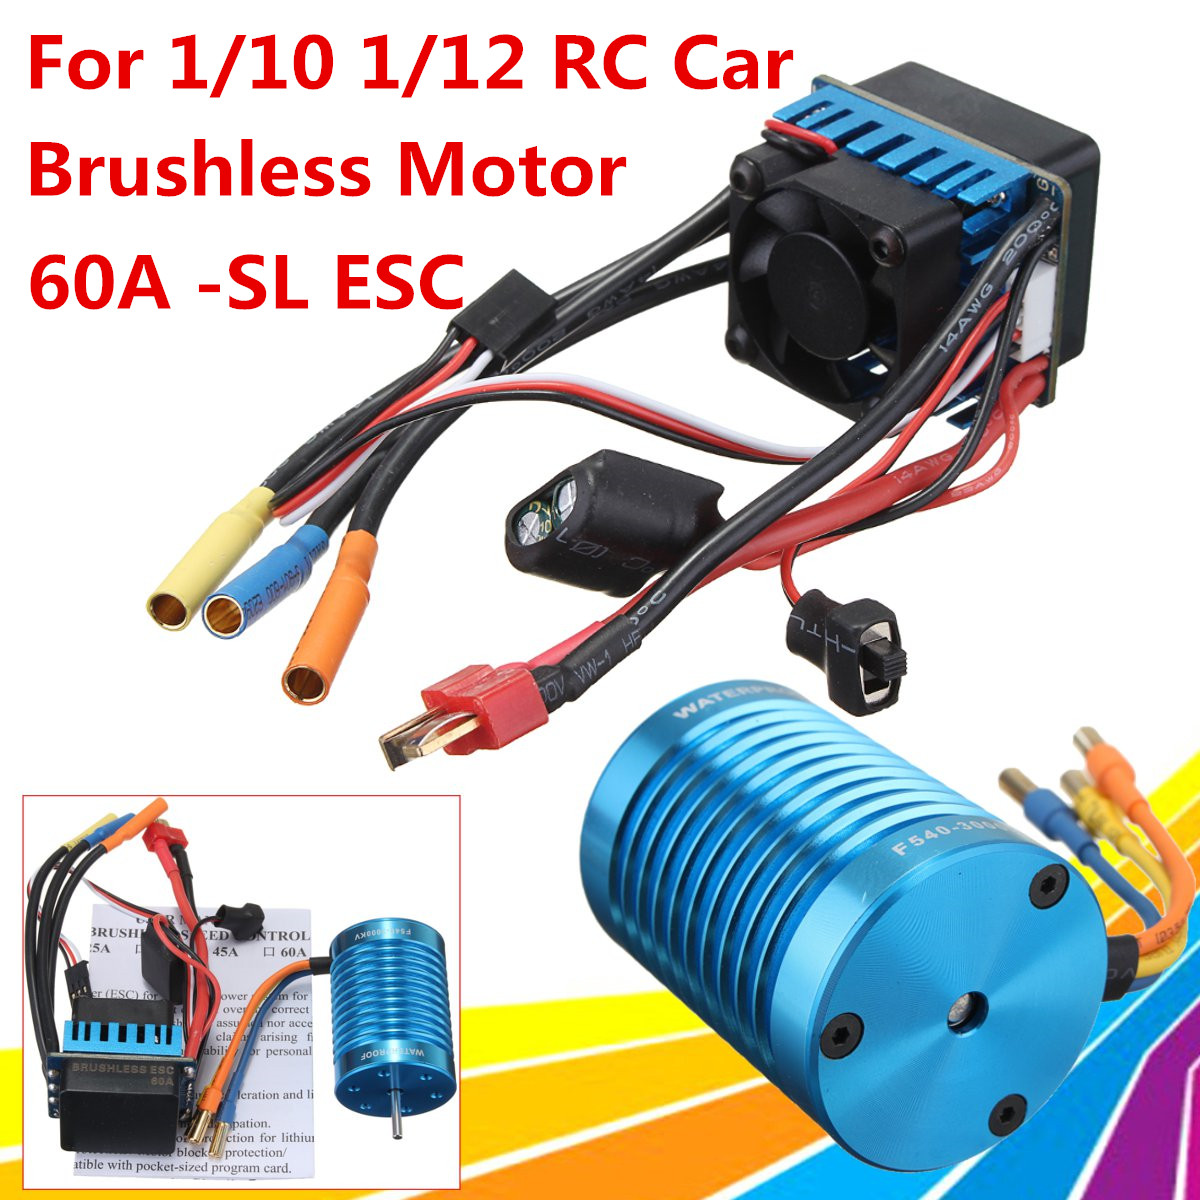 New Racing 60A ESC Brushless Speed Controller F540-3000KV Brushless Motor 13T Motor for 1/10 1/12 RC Car 45a brushless speed controller esc w fan for 1 18 1 12 cross country car